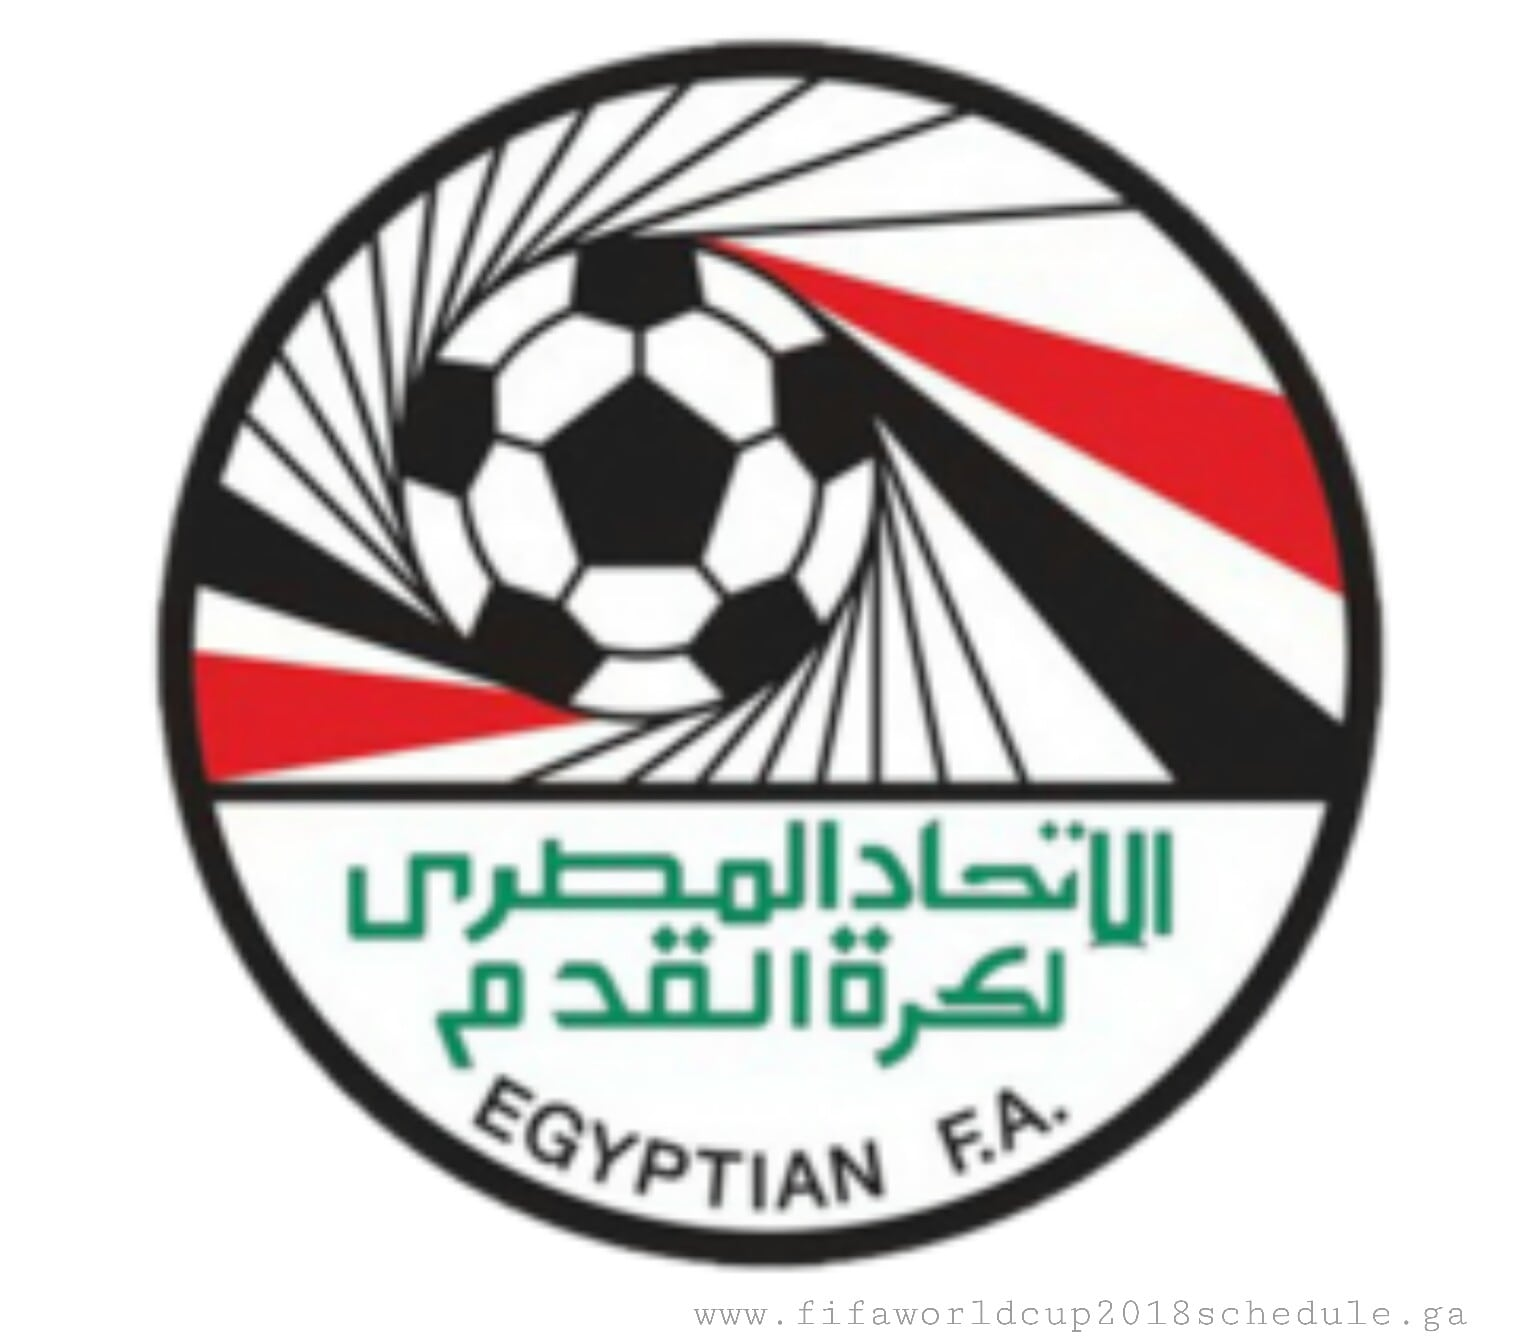 Fantastic Egypt World Cup 2018 - Egypt%2BFIFA%2BWorld%2BCup%2BRussia%2B2018  Graphic_88945 .jpg